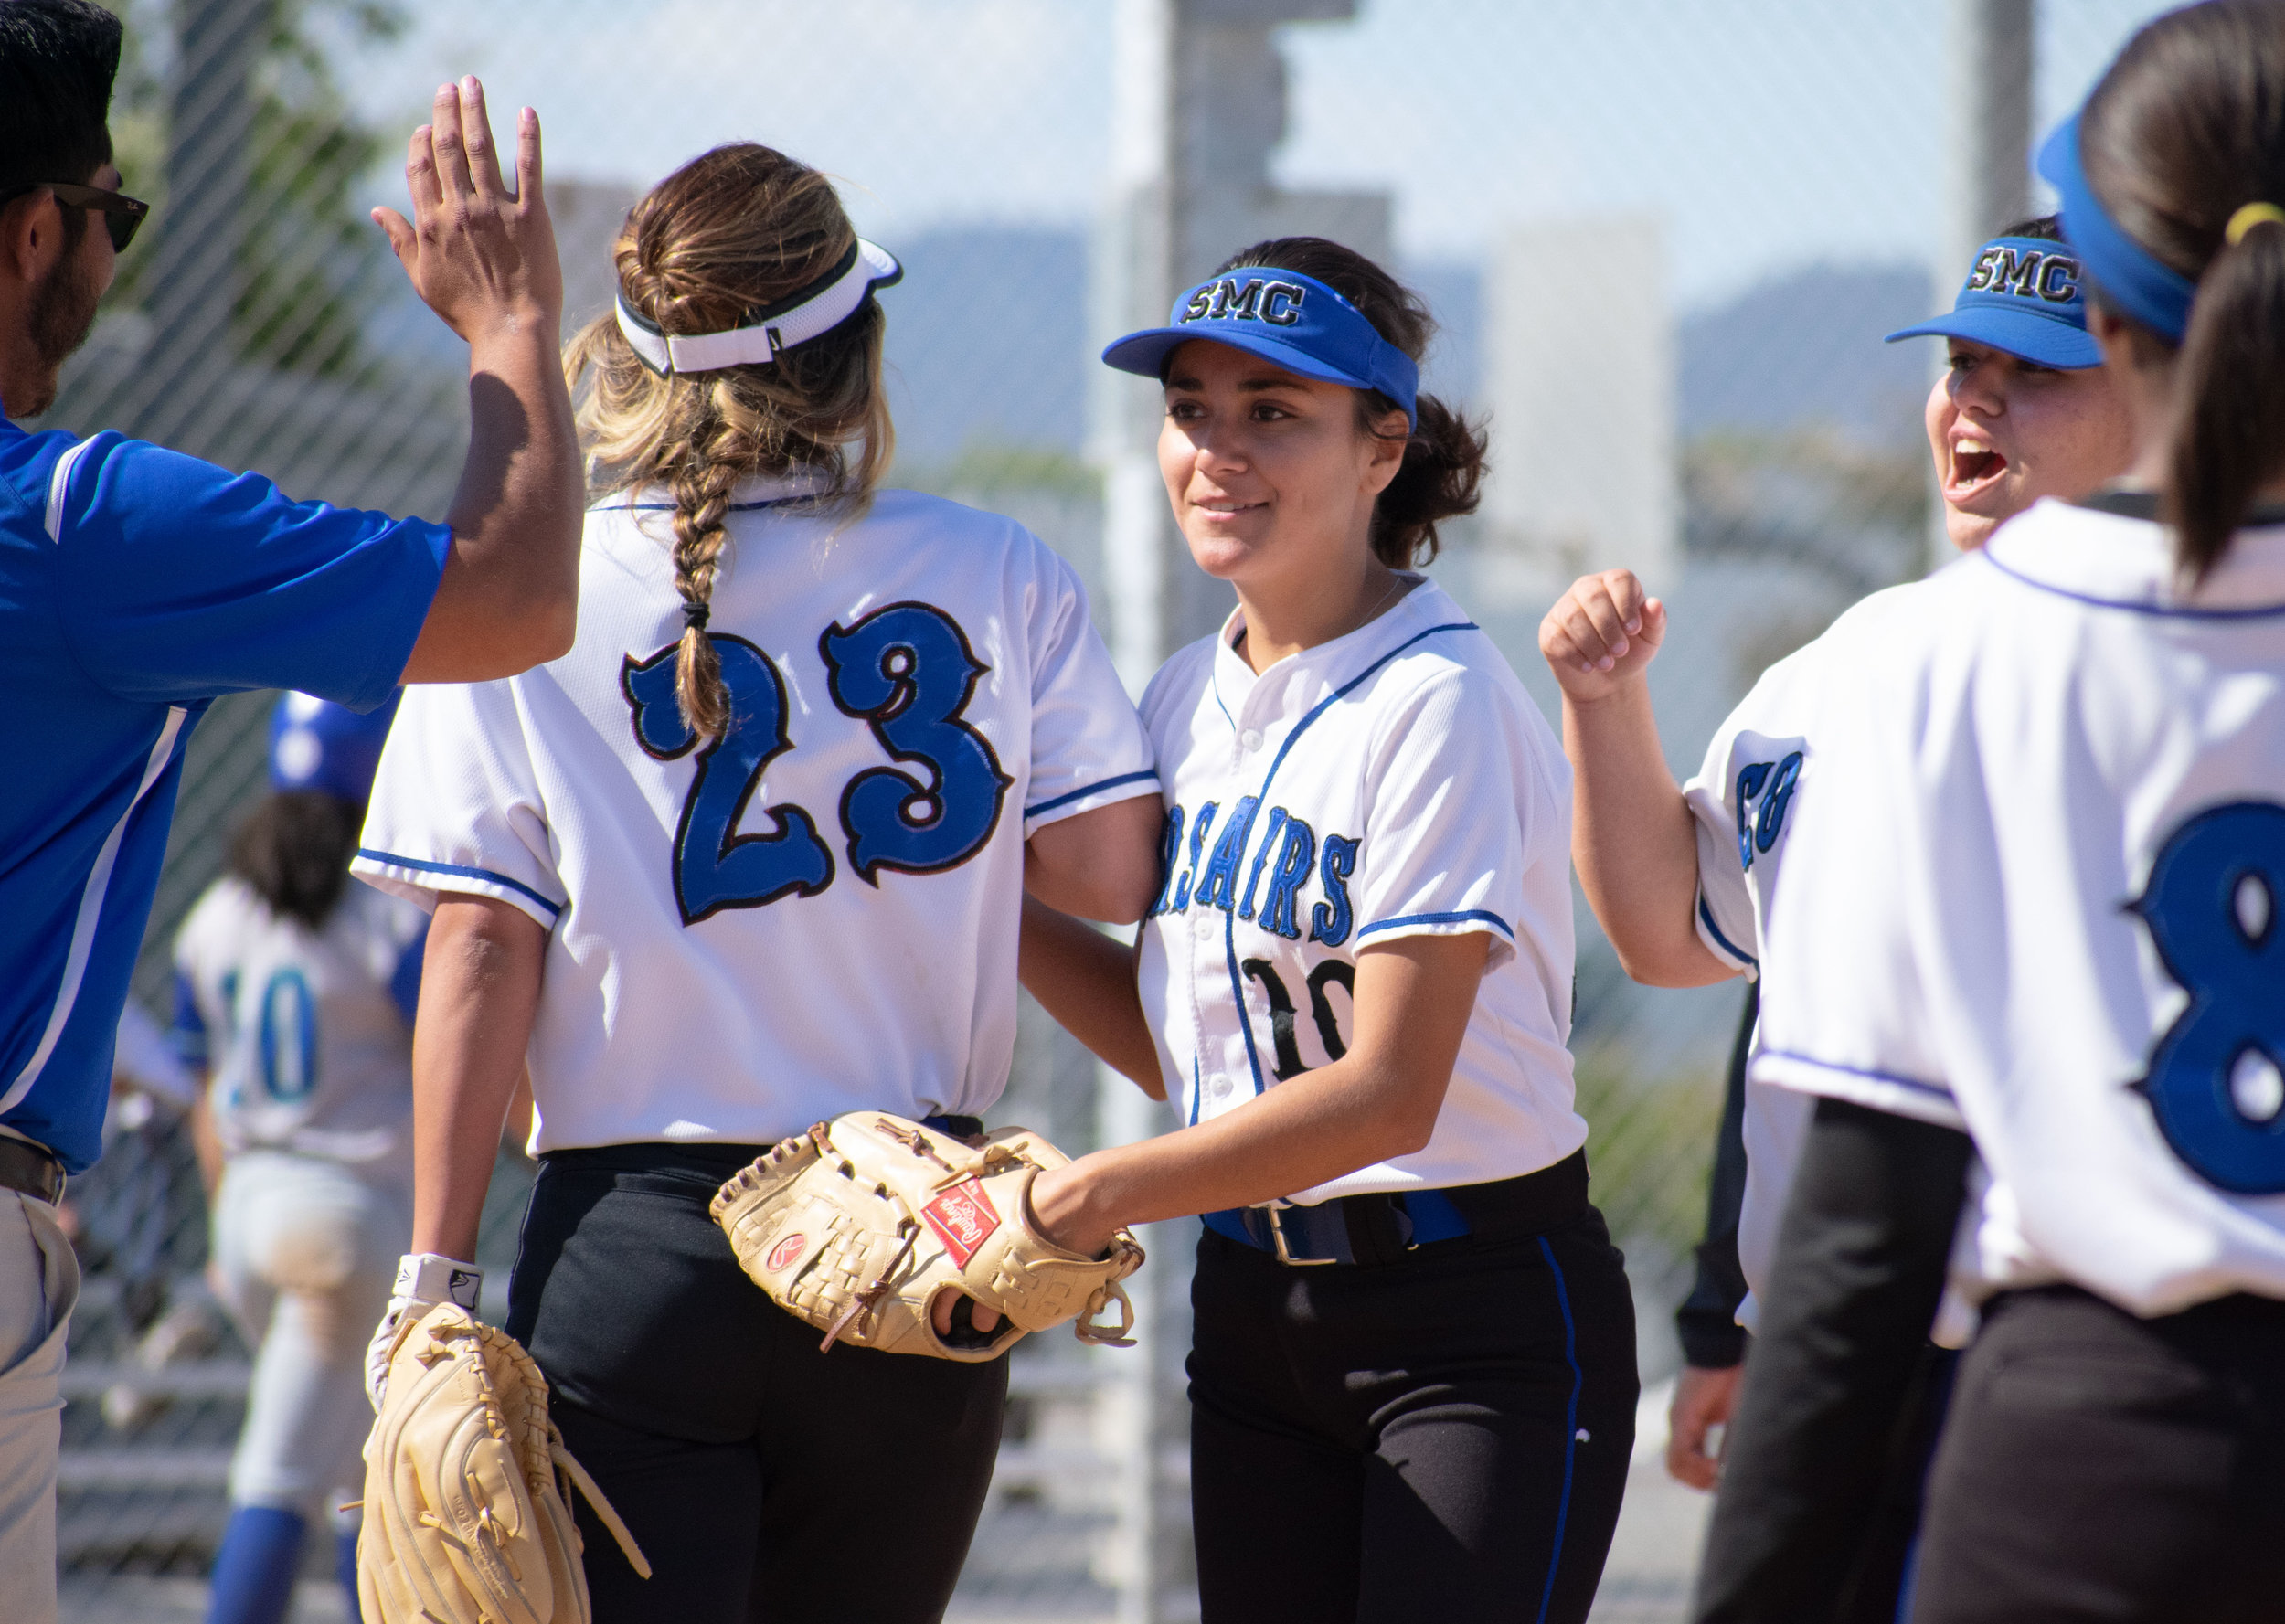 Santa Monica College Corsair Briana Osuna (#10), center, congratulates with the rest of the team after a 3-2 win against the Oxnard Condors in a softball game on Thursday, April 19, 2018 at the John Adams Middle School Field in Santa Monica, California. The game broke a seven-game losing streak on their penultimate game of the season. (Ethan Lauren/Corsair Photo)